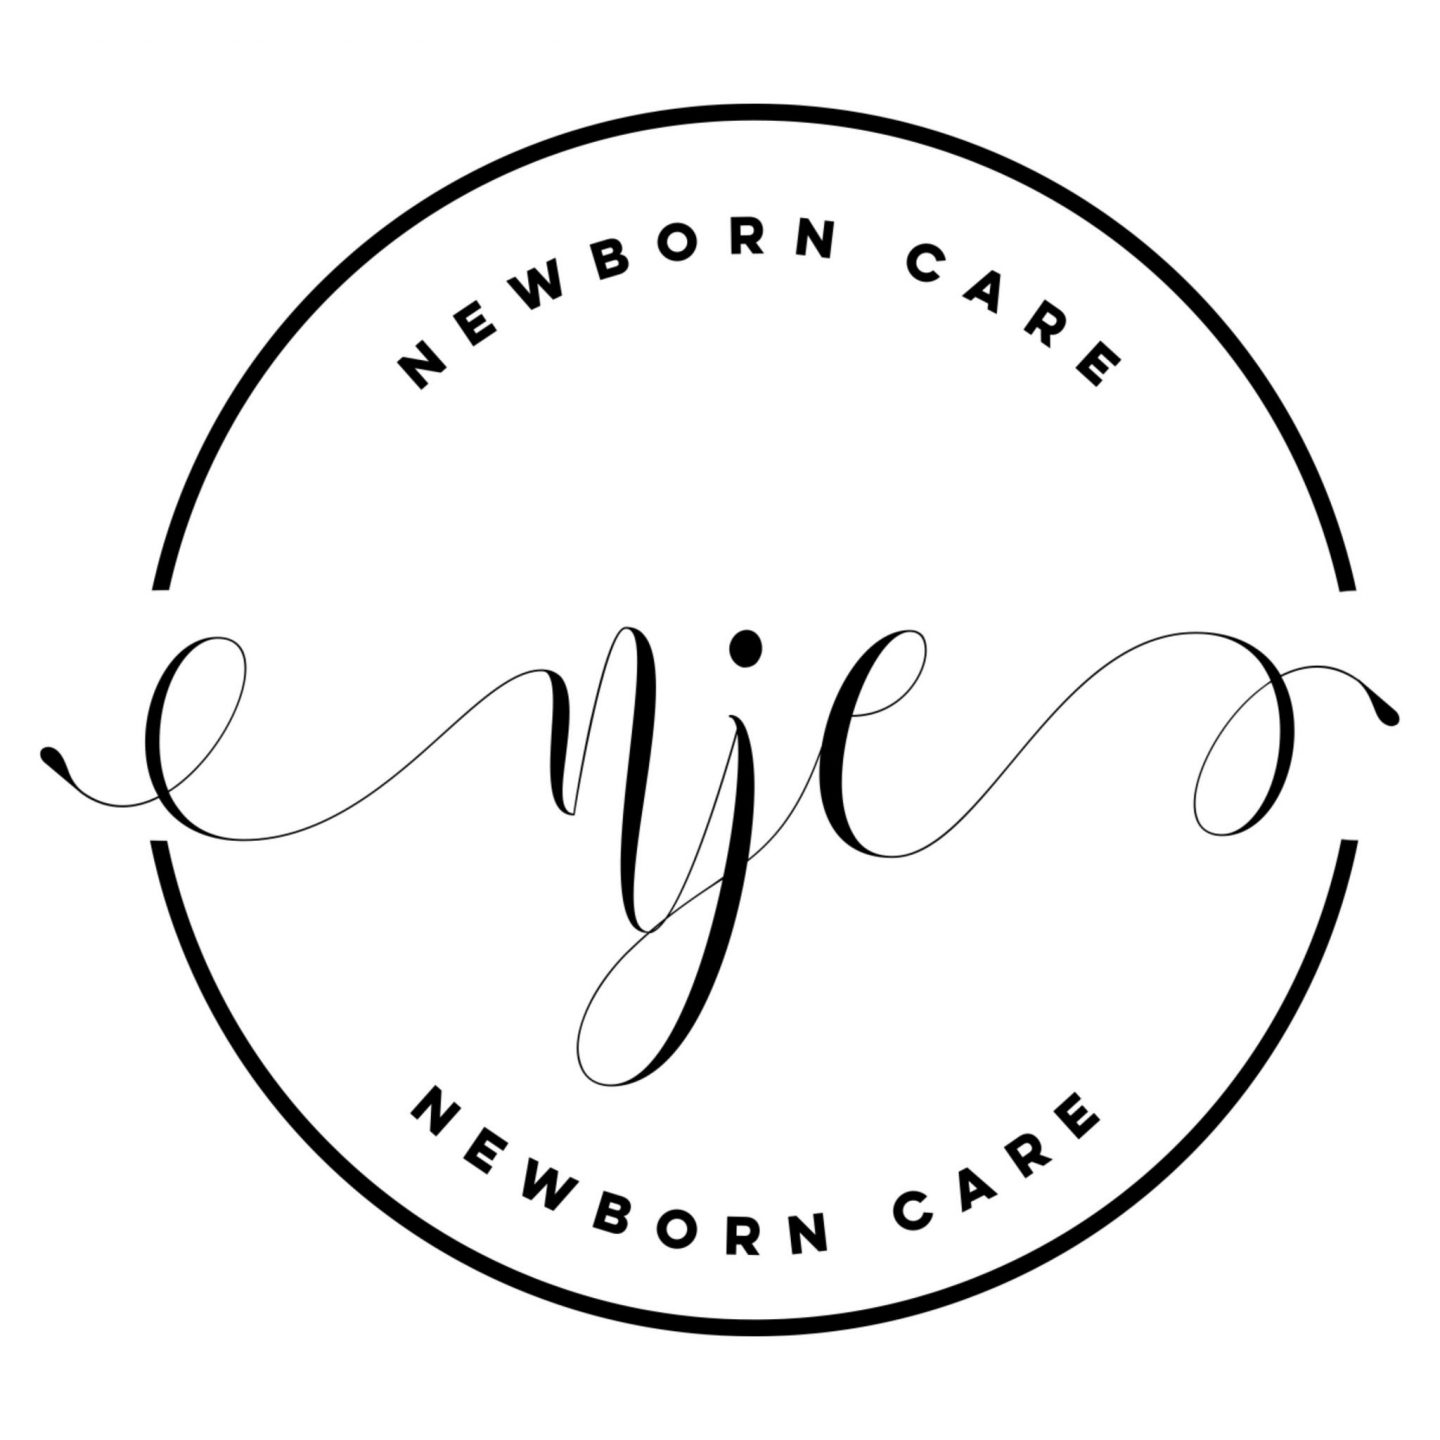 Maternity Nurse - NJE Newborn Care